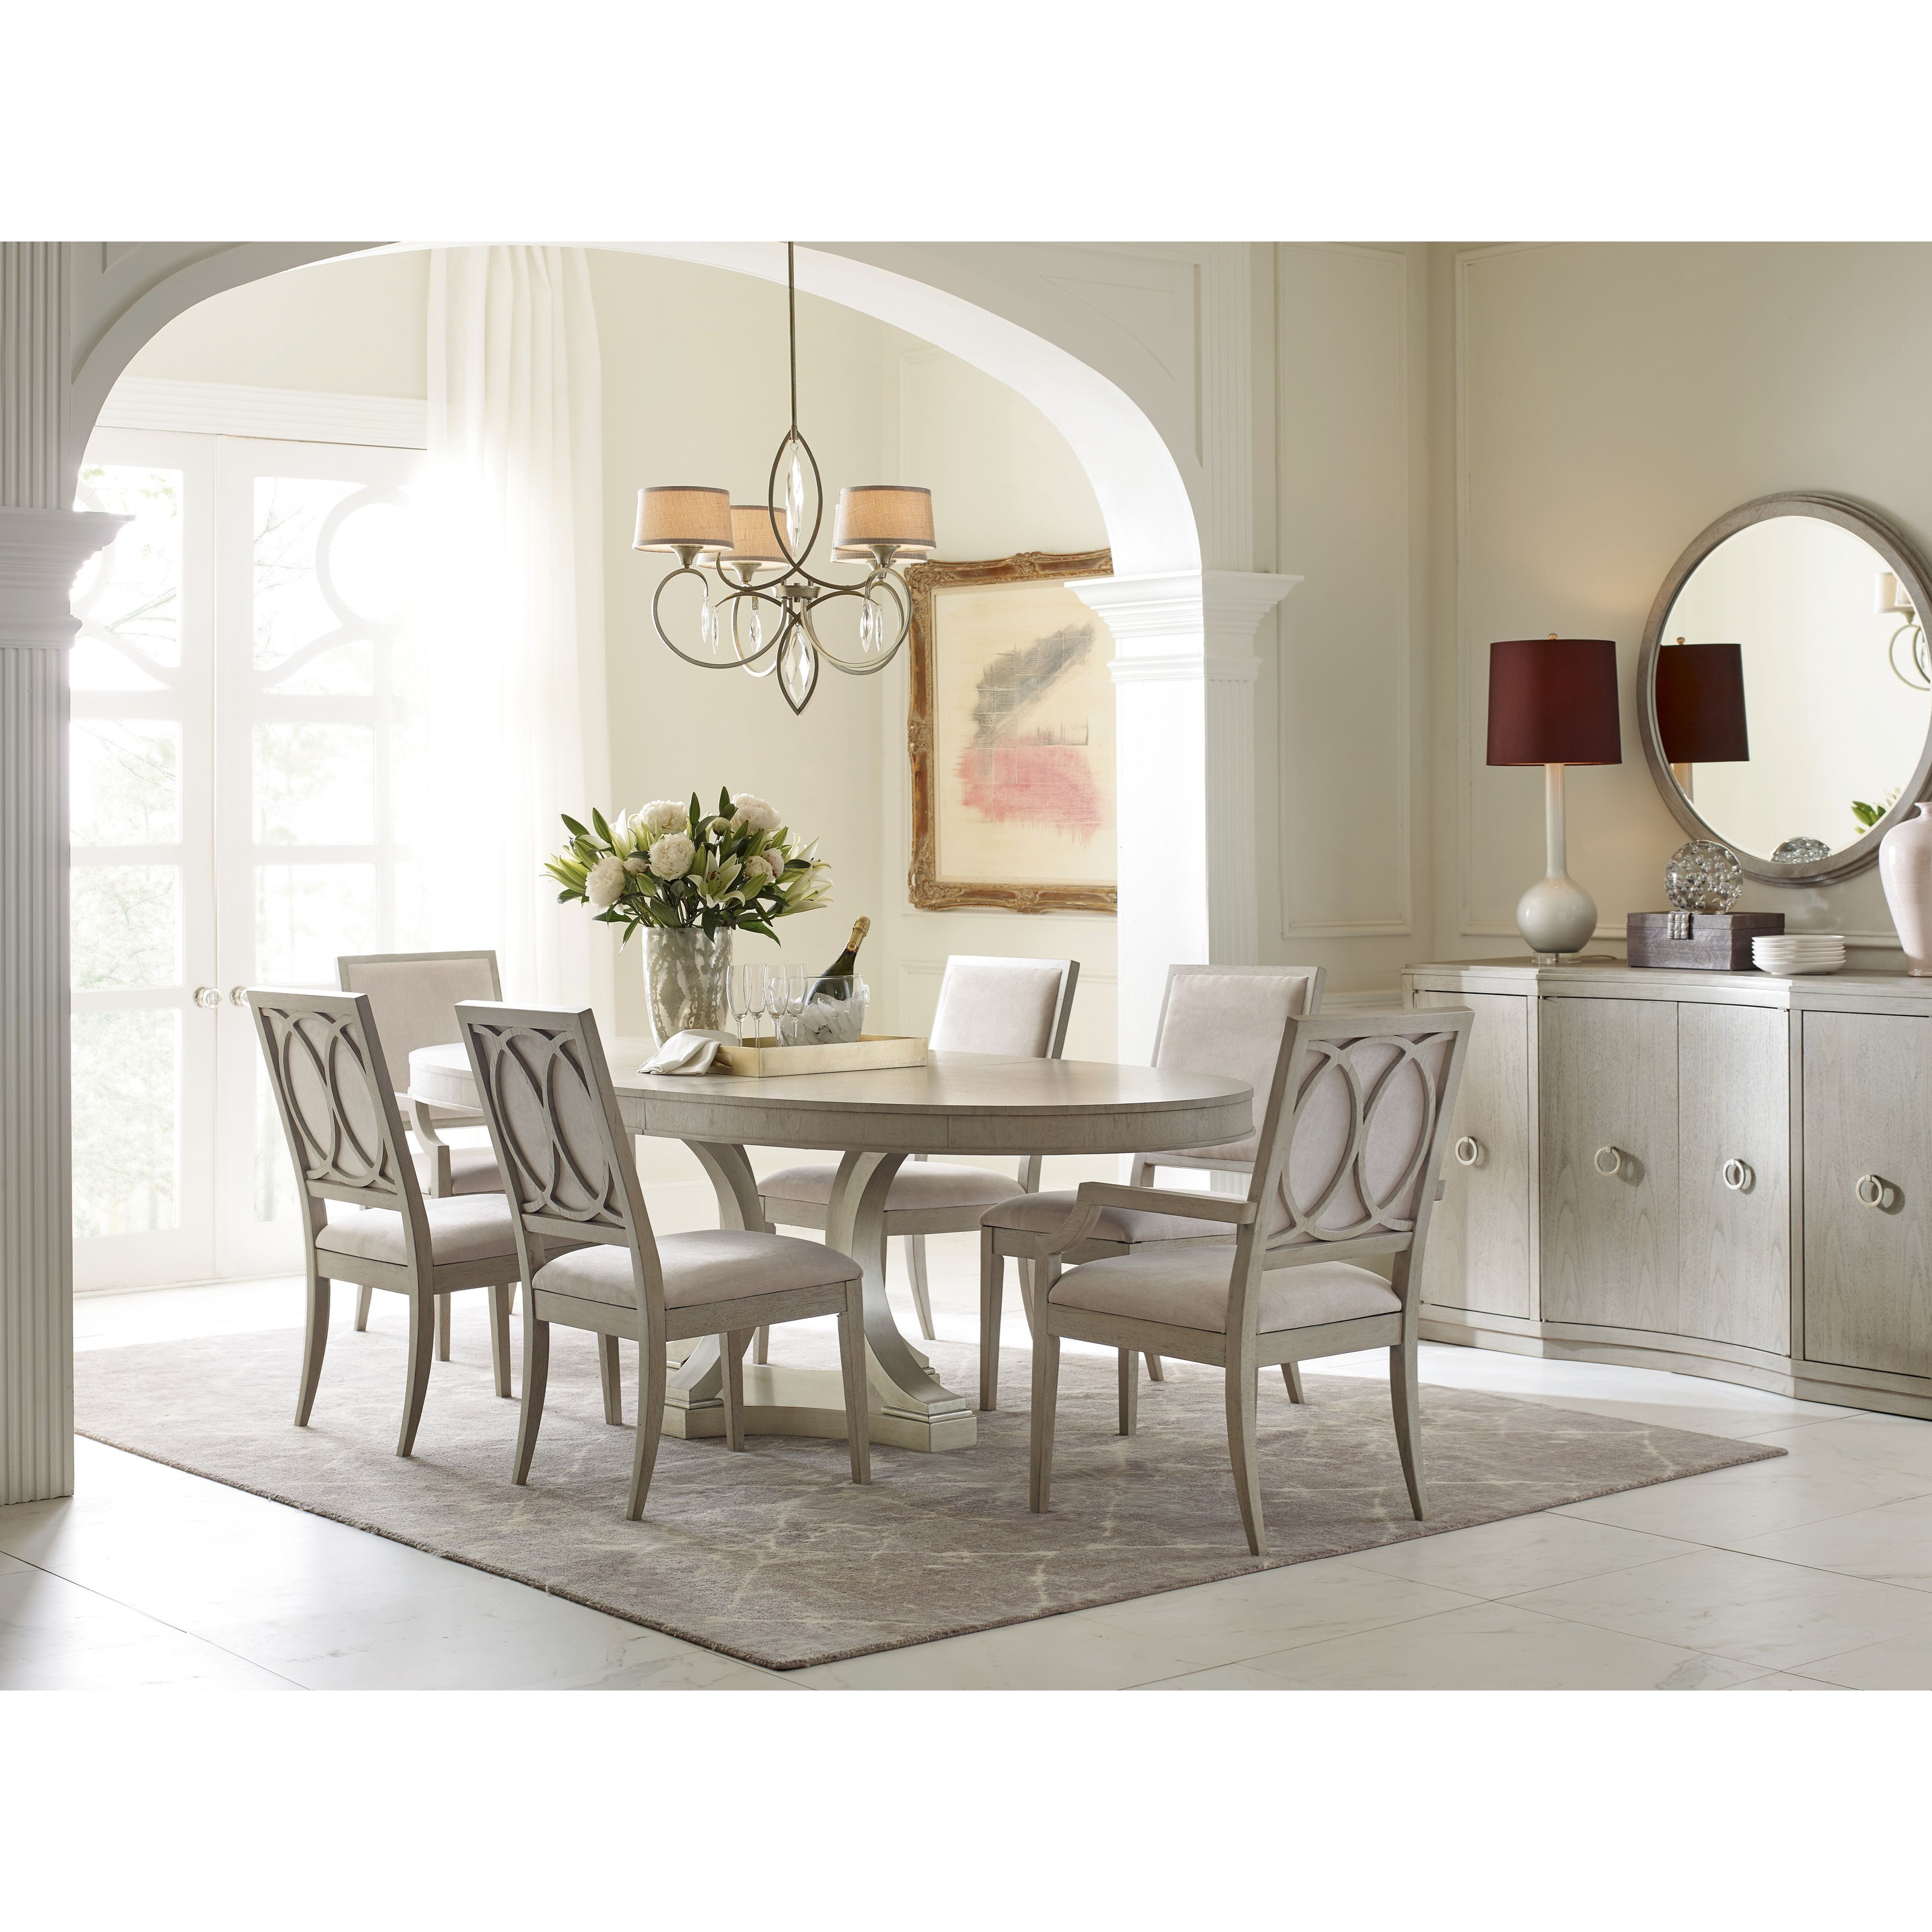 Rachael ray home by legacy classic cinema oval single for Classic home furniture jacksonville fl